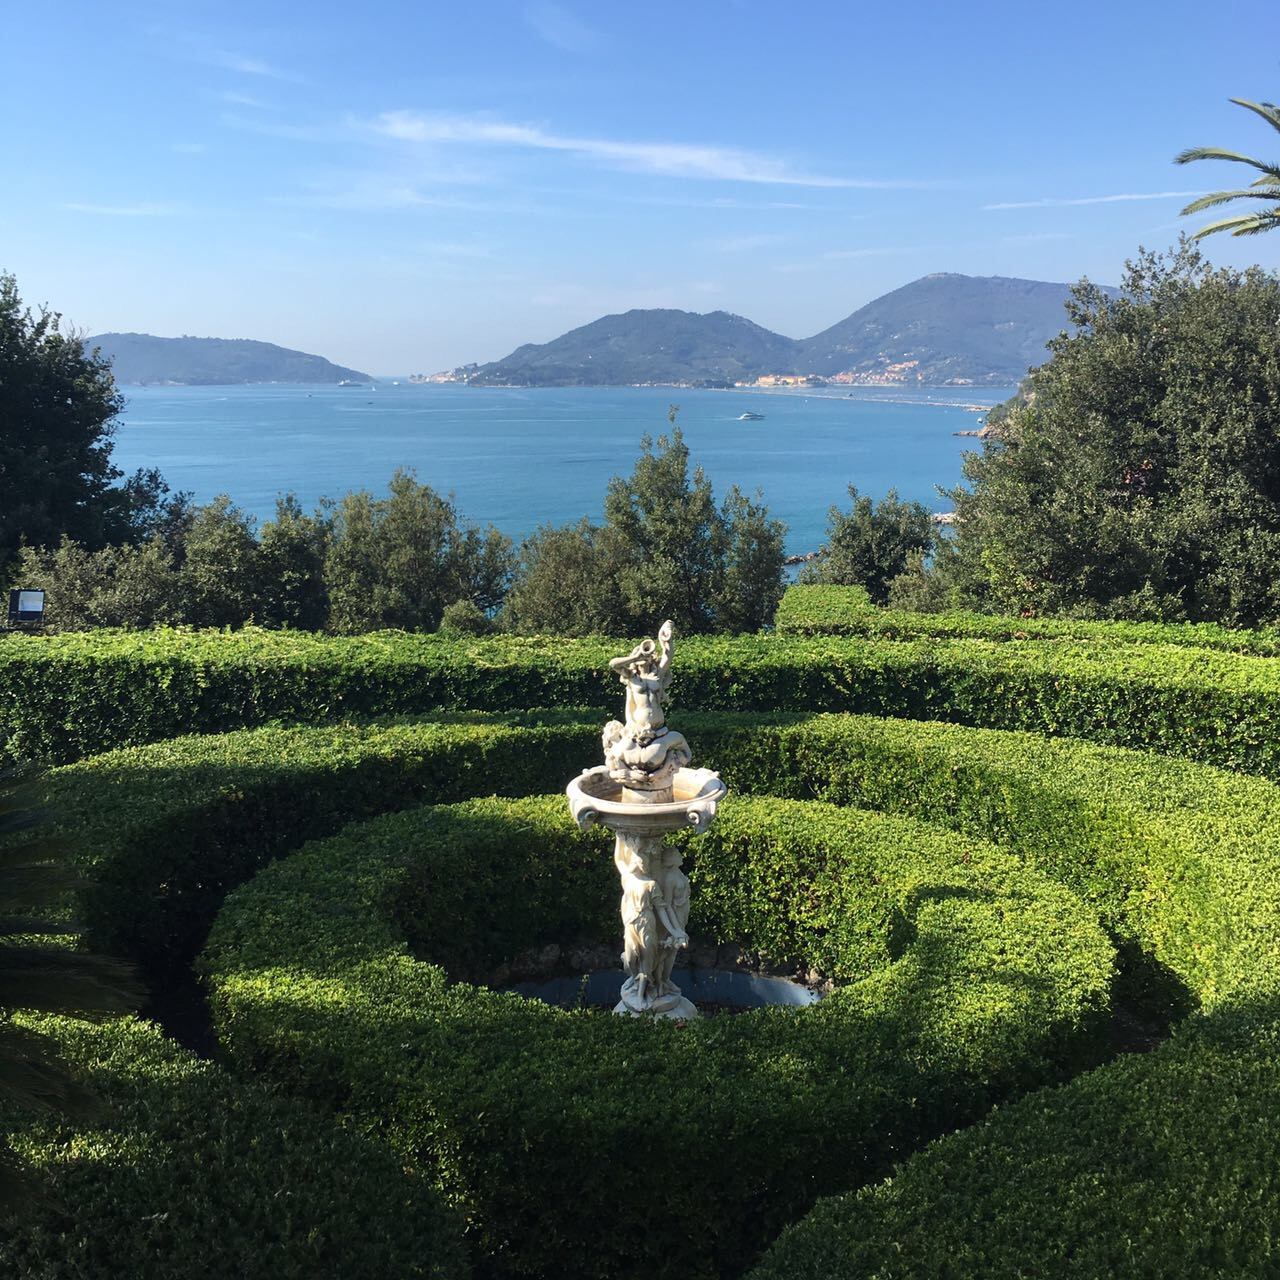 exquisite italian gardens, incredible riviera view, view of the sea, wedding venue with a view of the sea,